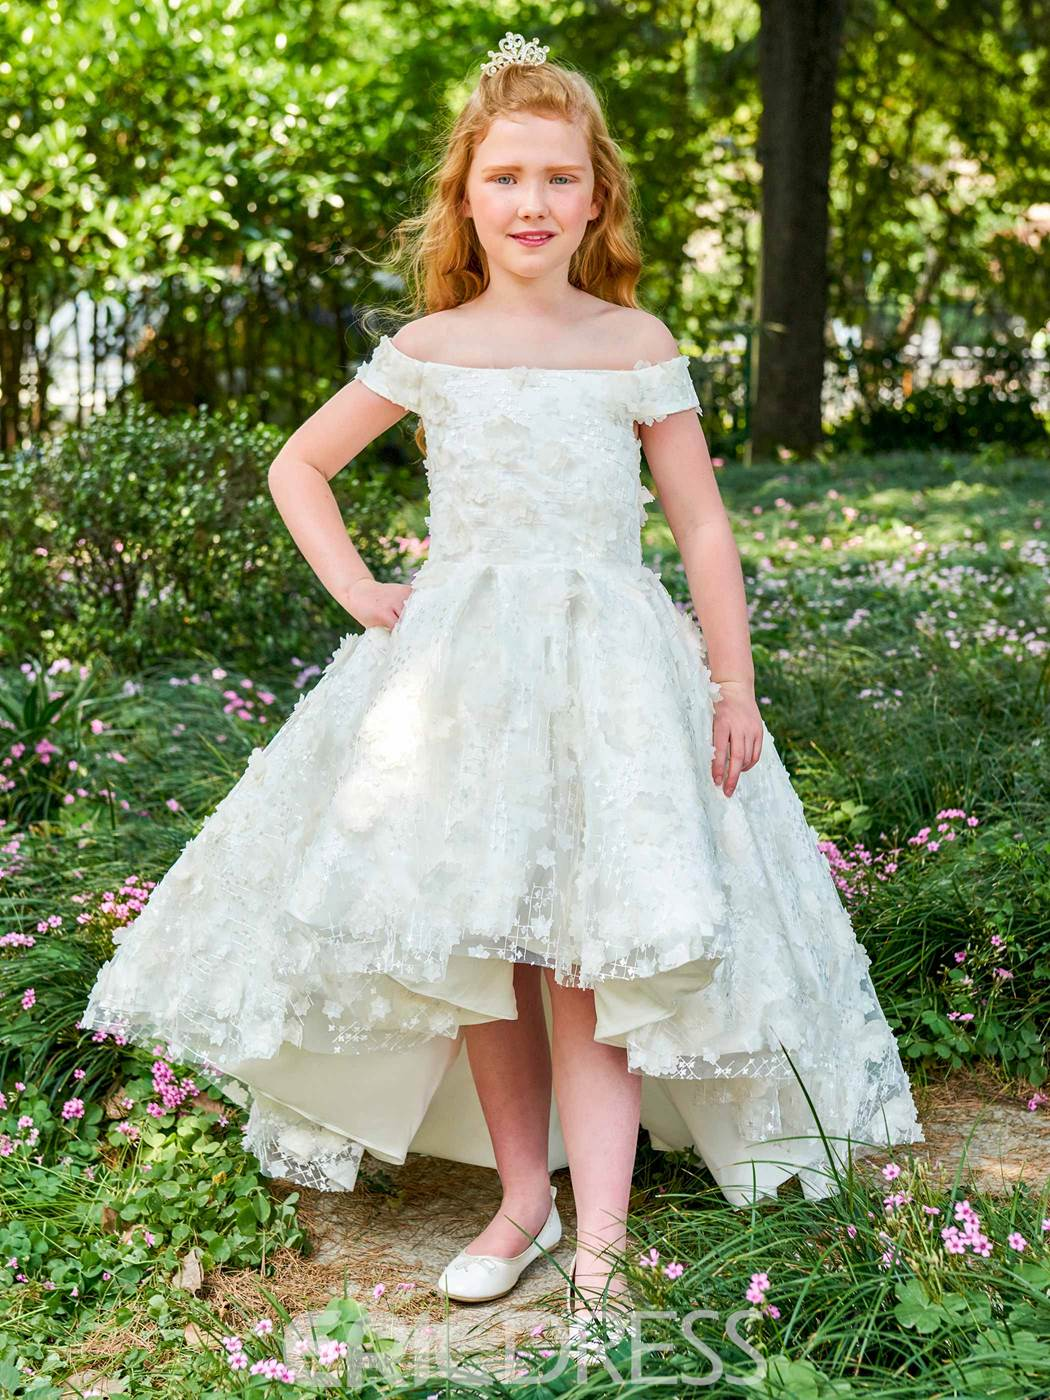 Ericdress Off The Shoulder Lace Princess Flower Girl Dress 12885821